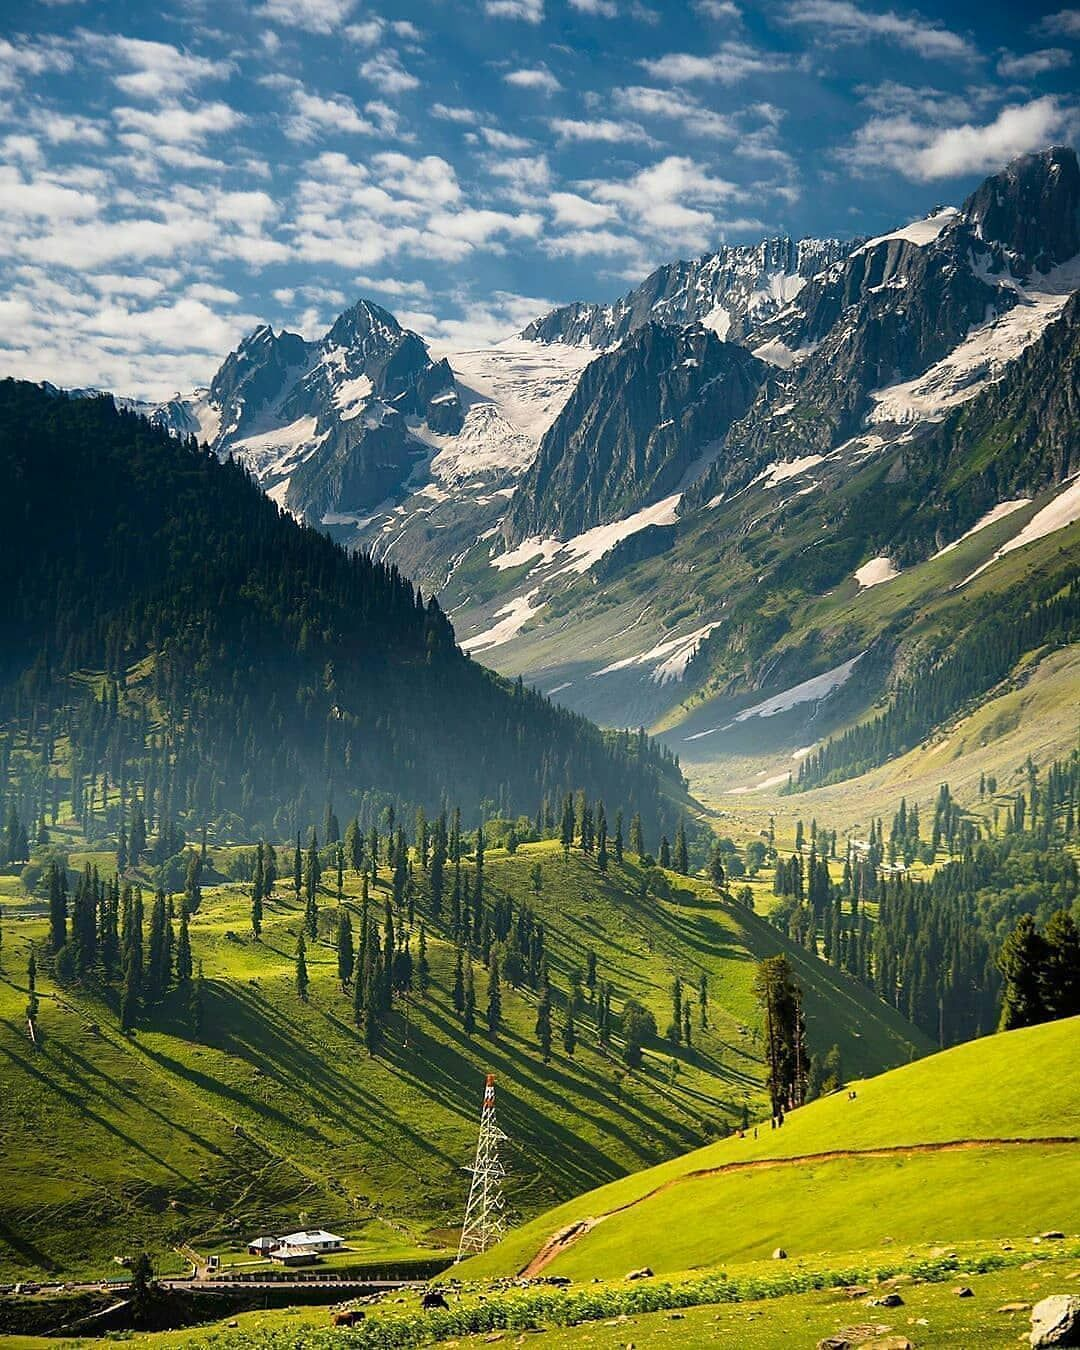 Himachal Is Love On Instagram Instagram Photo By Rajshree1209 Sonmarg Jammu And Kashmir Ind Beautiful Places On Earth Cool Places To Visit Kashmir India